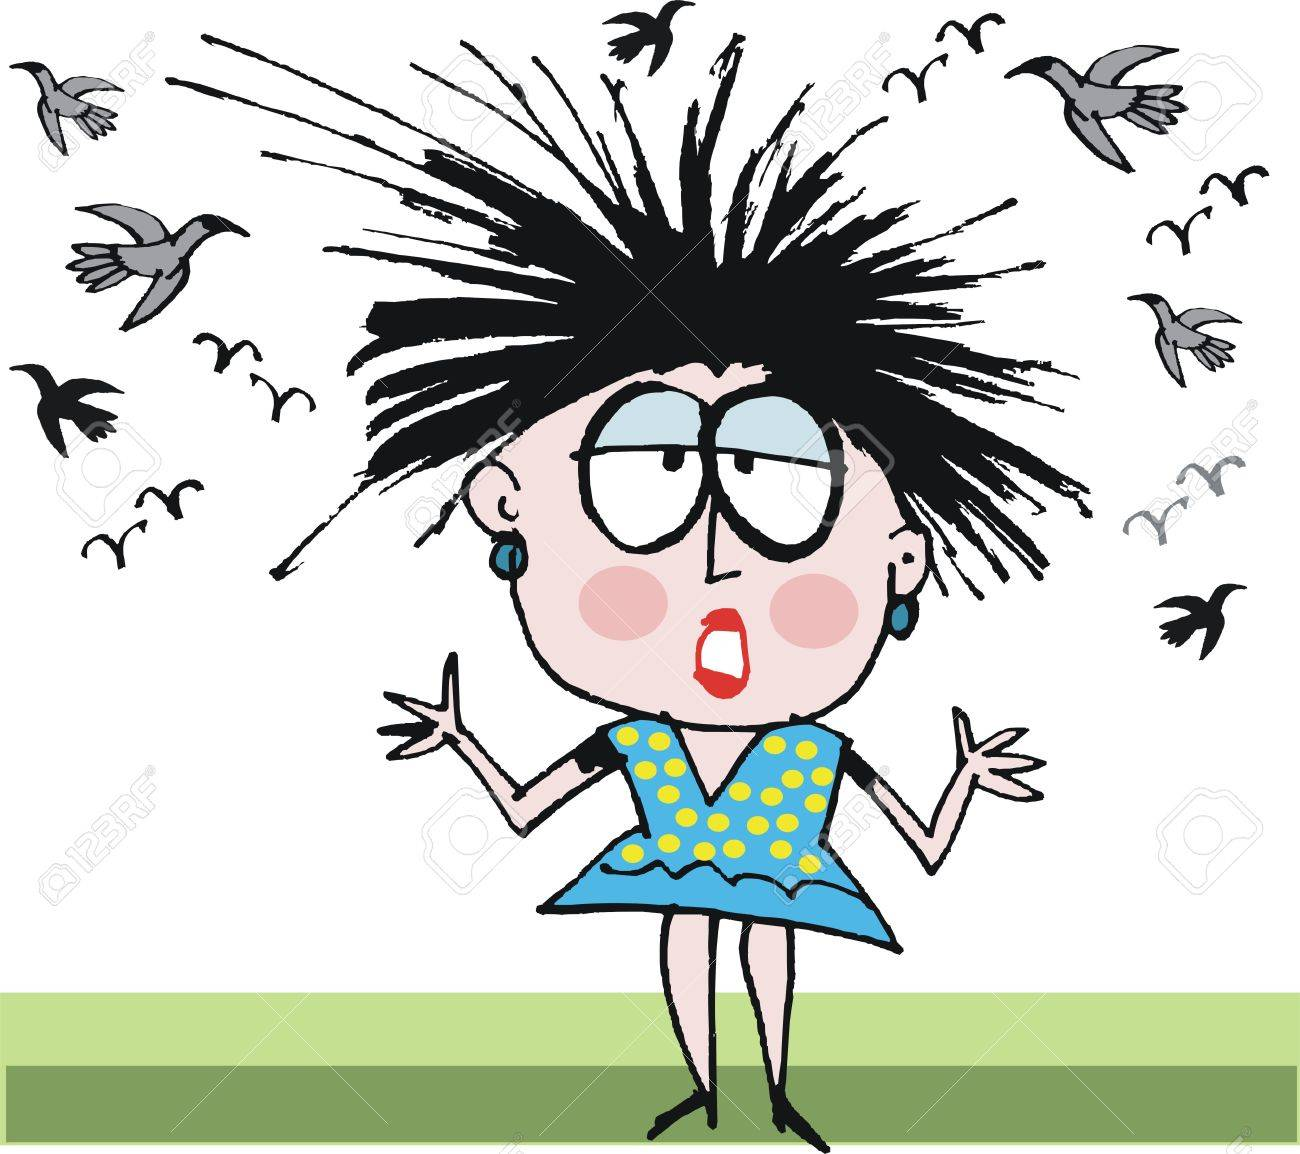 Vector Cartoon Of Woman Having Bad Hair Day Royalty Free Cliparts